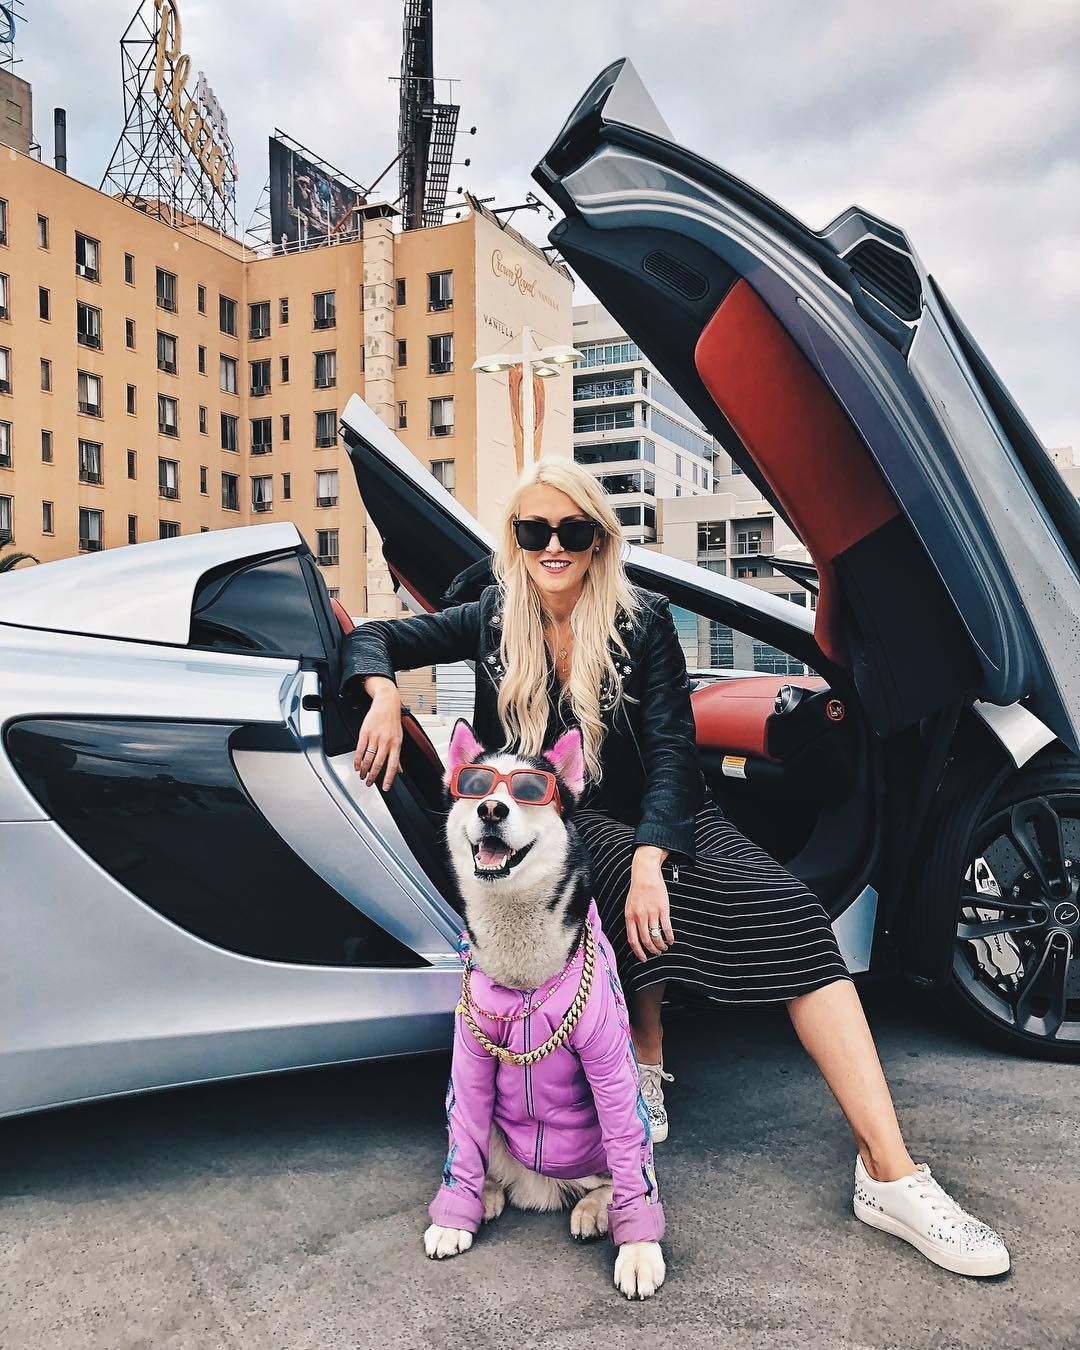 This Husky Has More Swag Than I Ever Will Swagrman Super Cars Car Girls Futuristic Cars